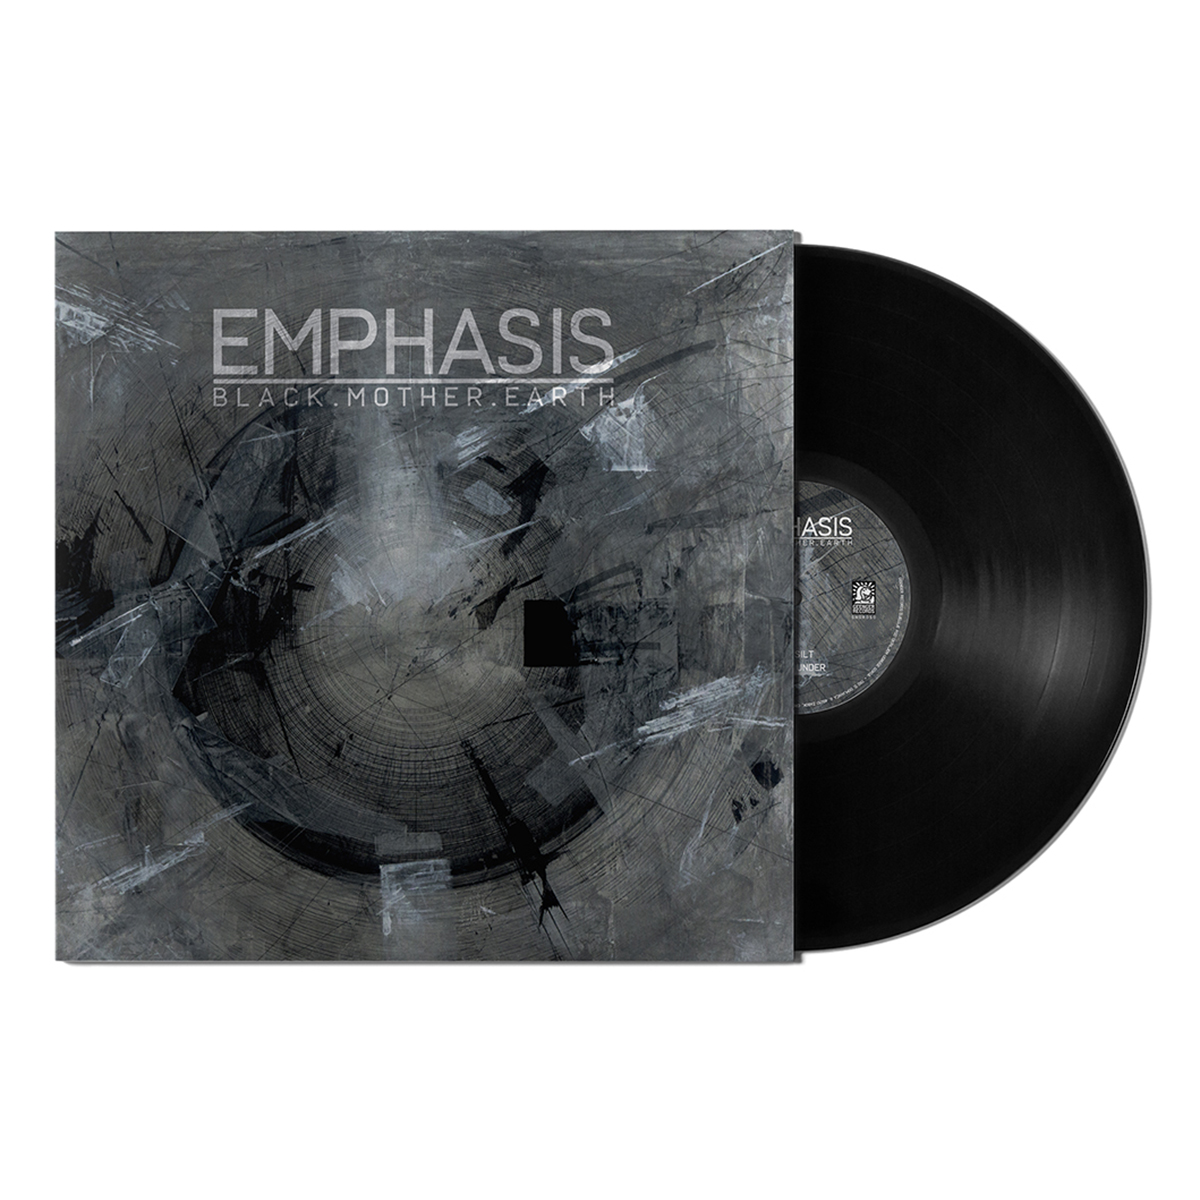 EMPHASIS - Black.Mother.Earth